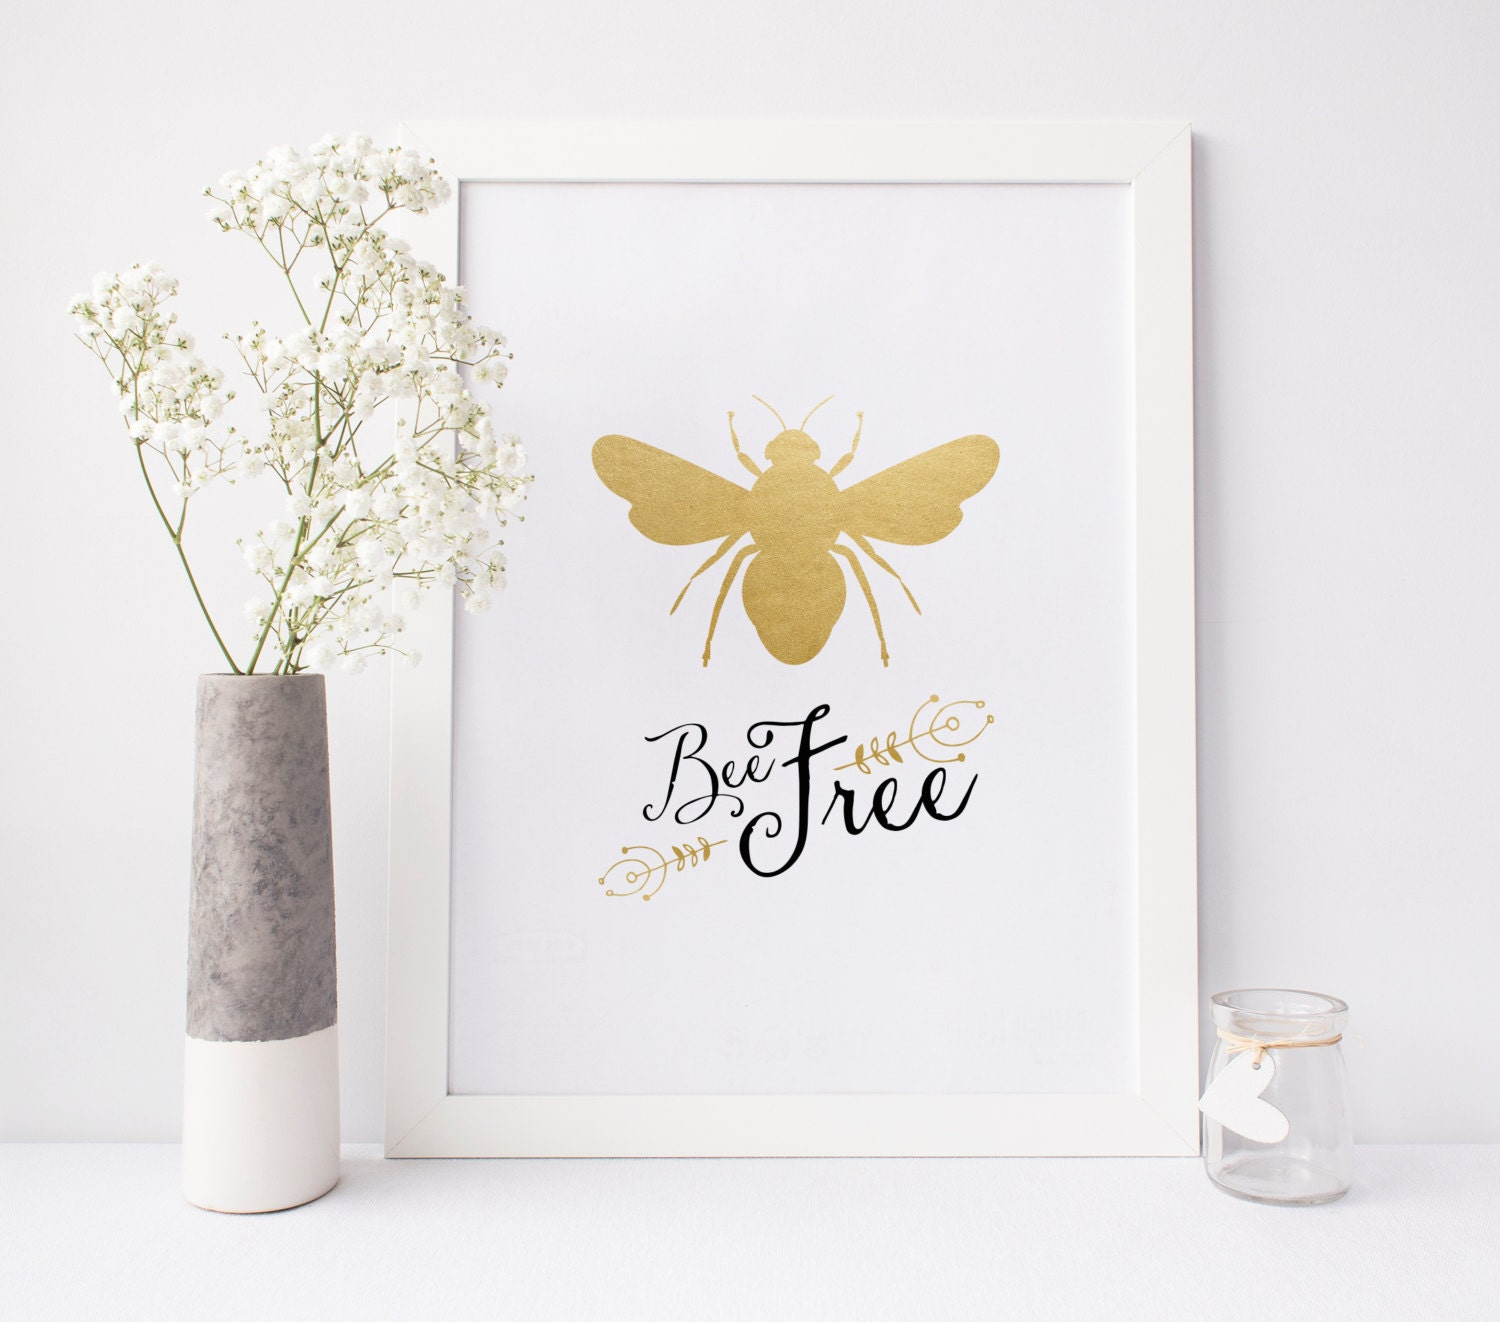 Bee Free Print Honey Bumble Poster Be